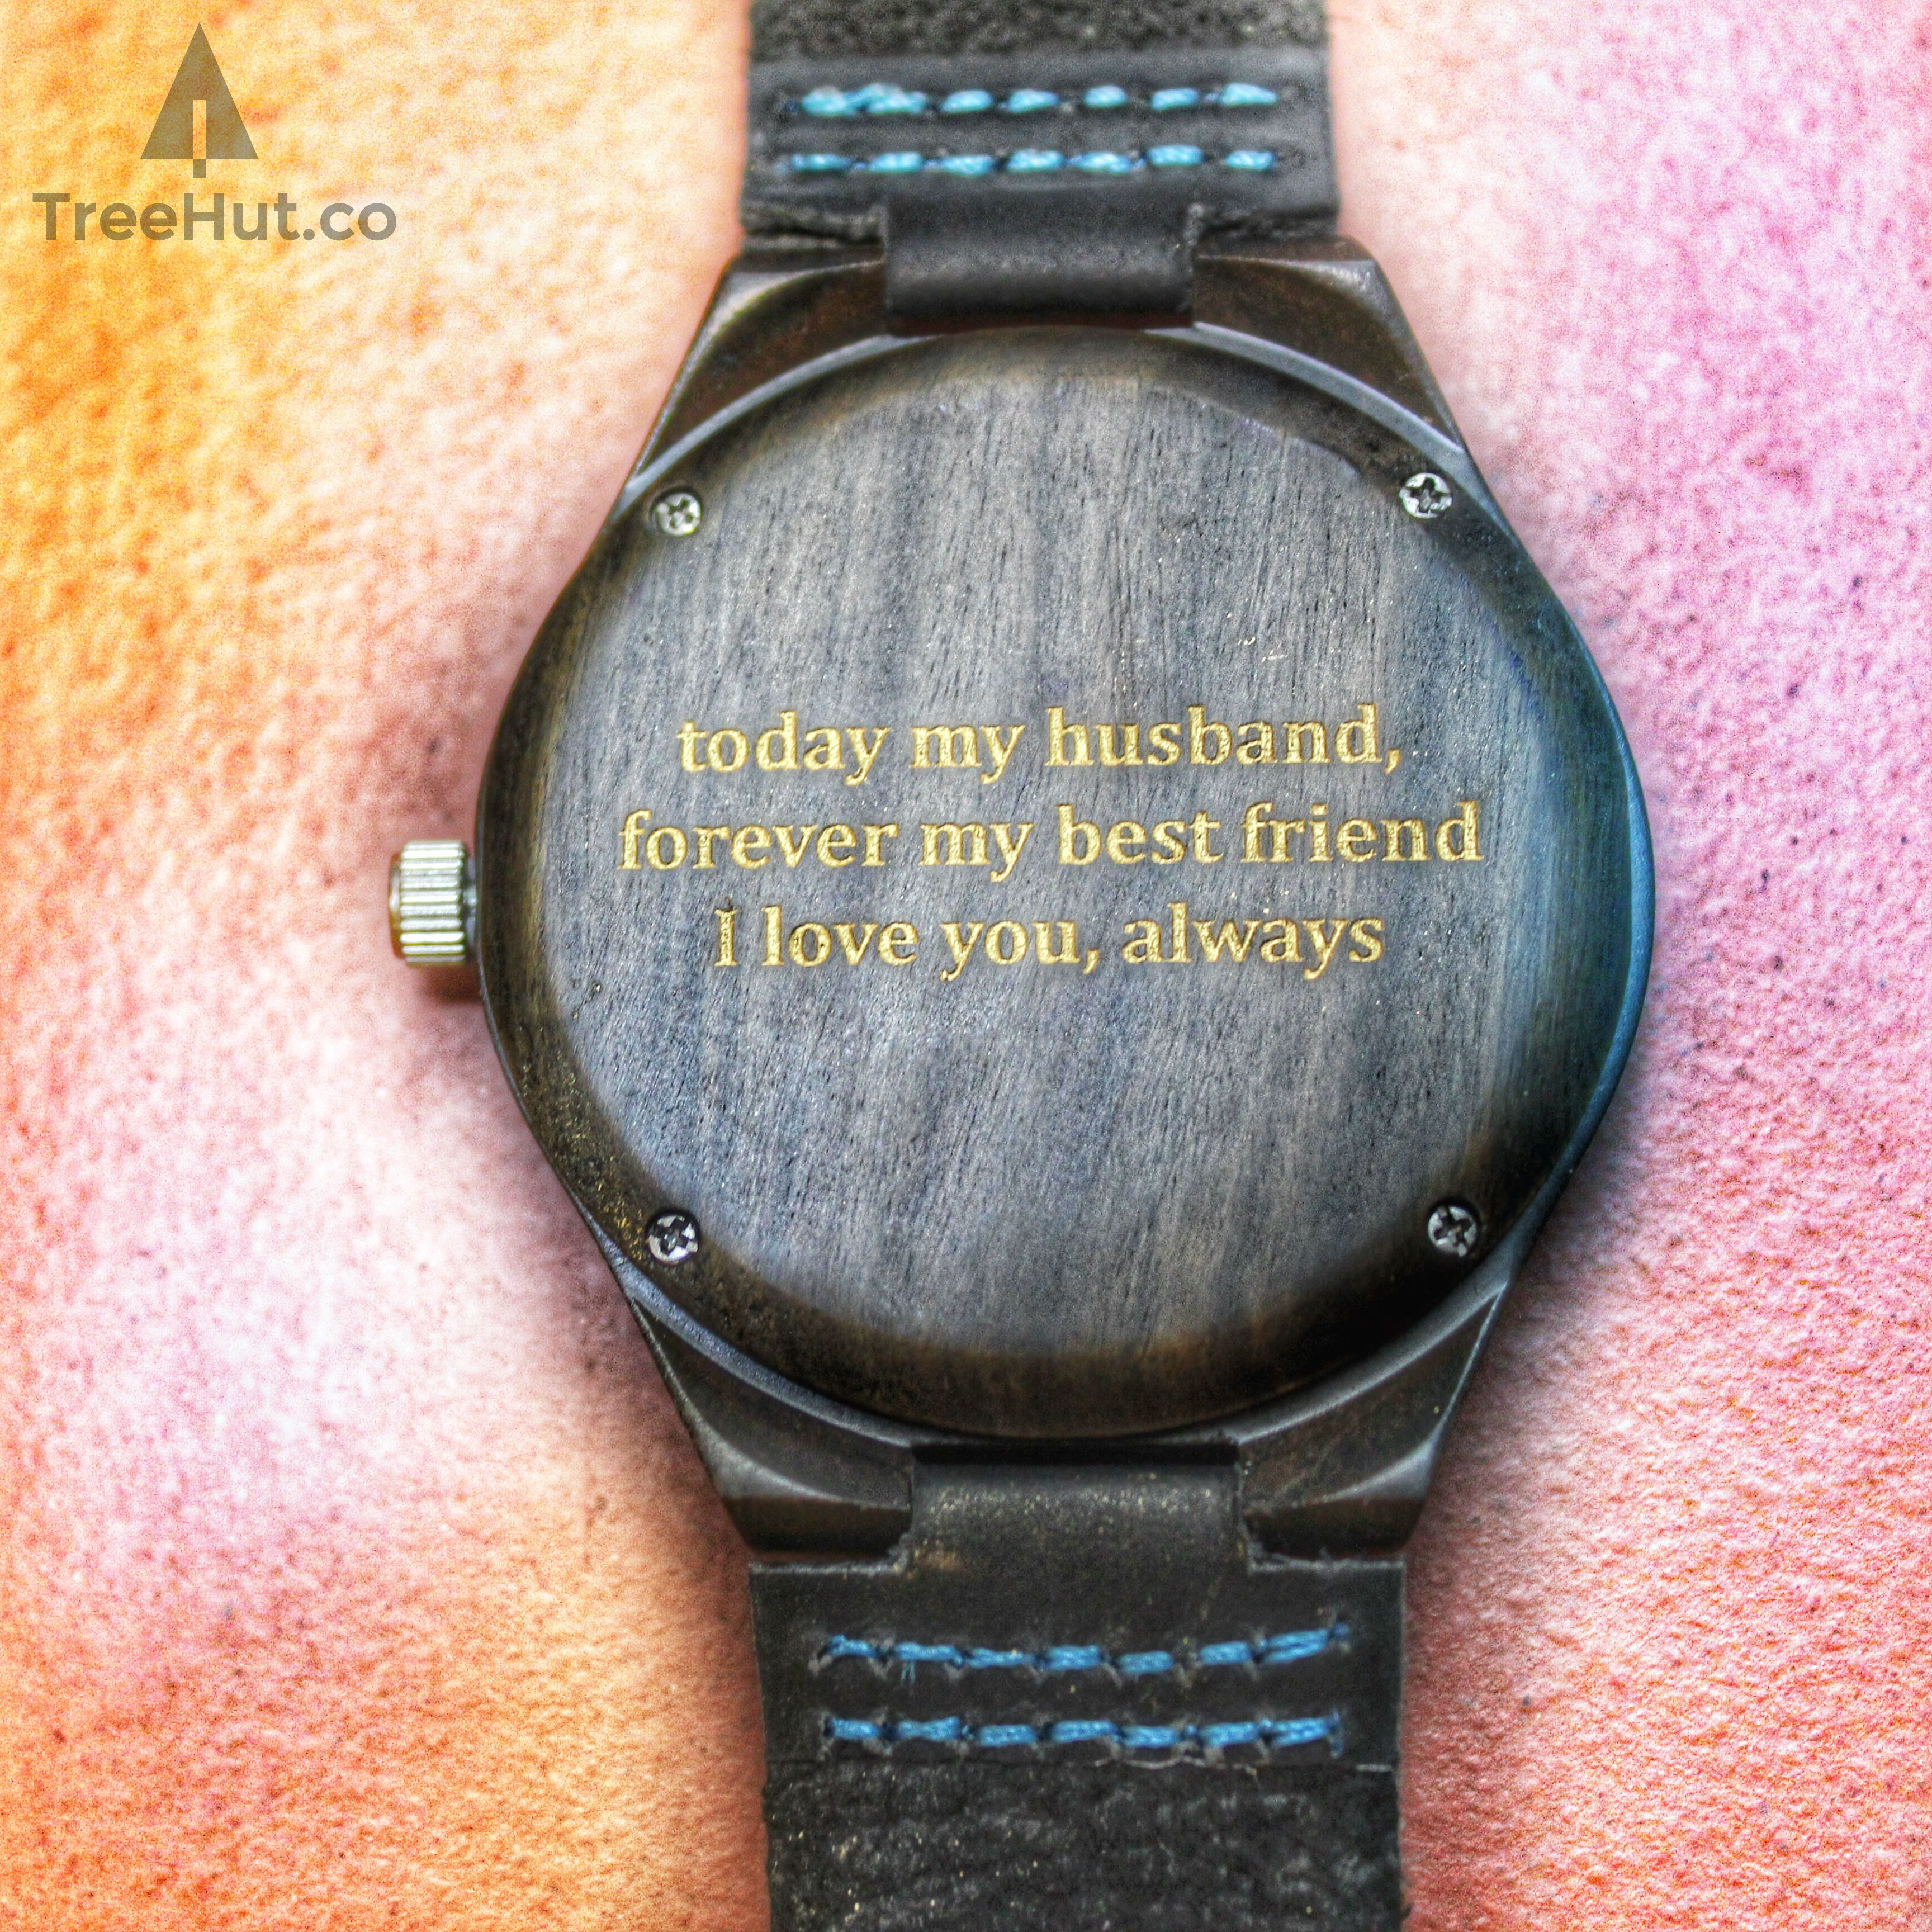 Watch Engraving Quotes: Wedding Gifts For Groom